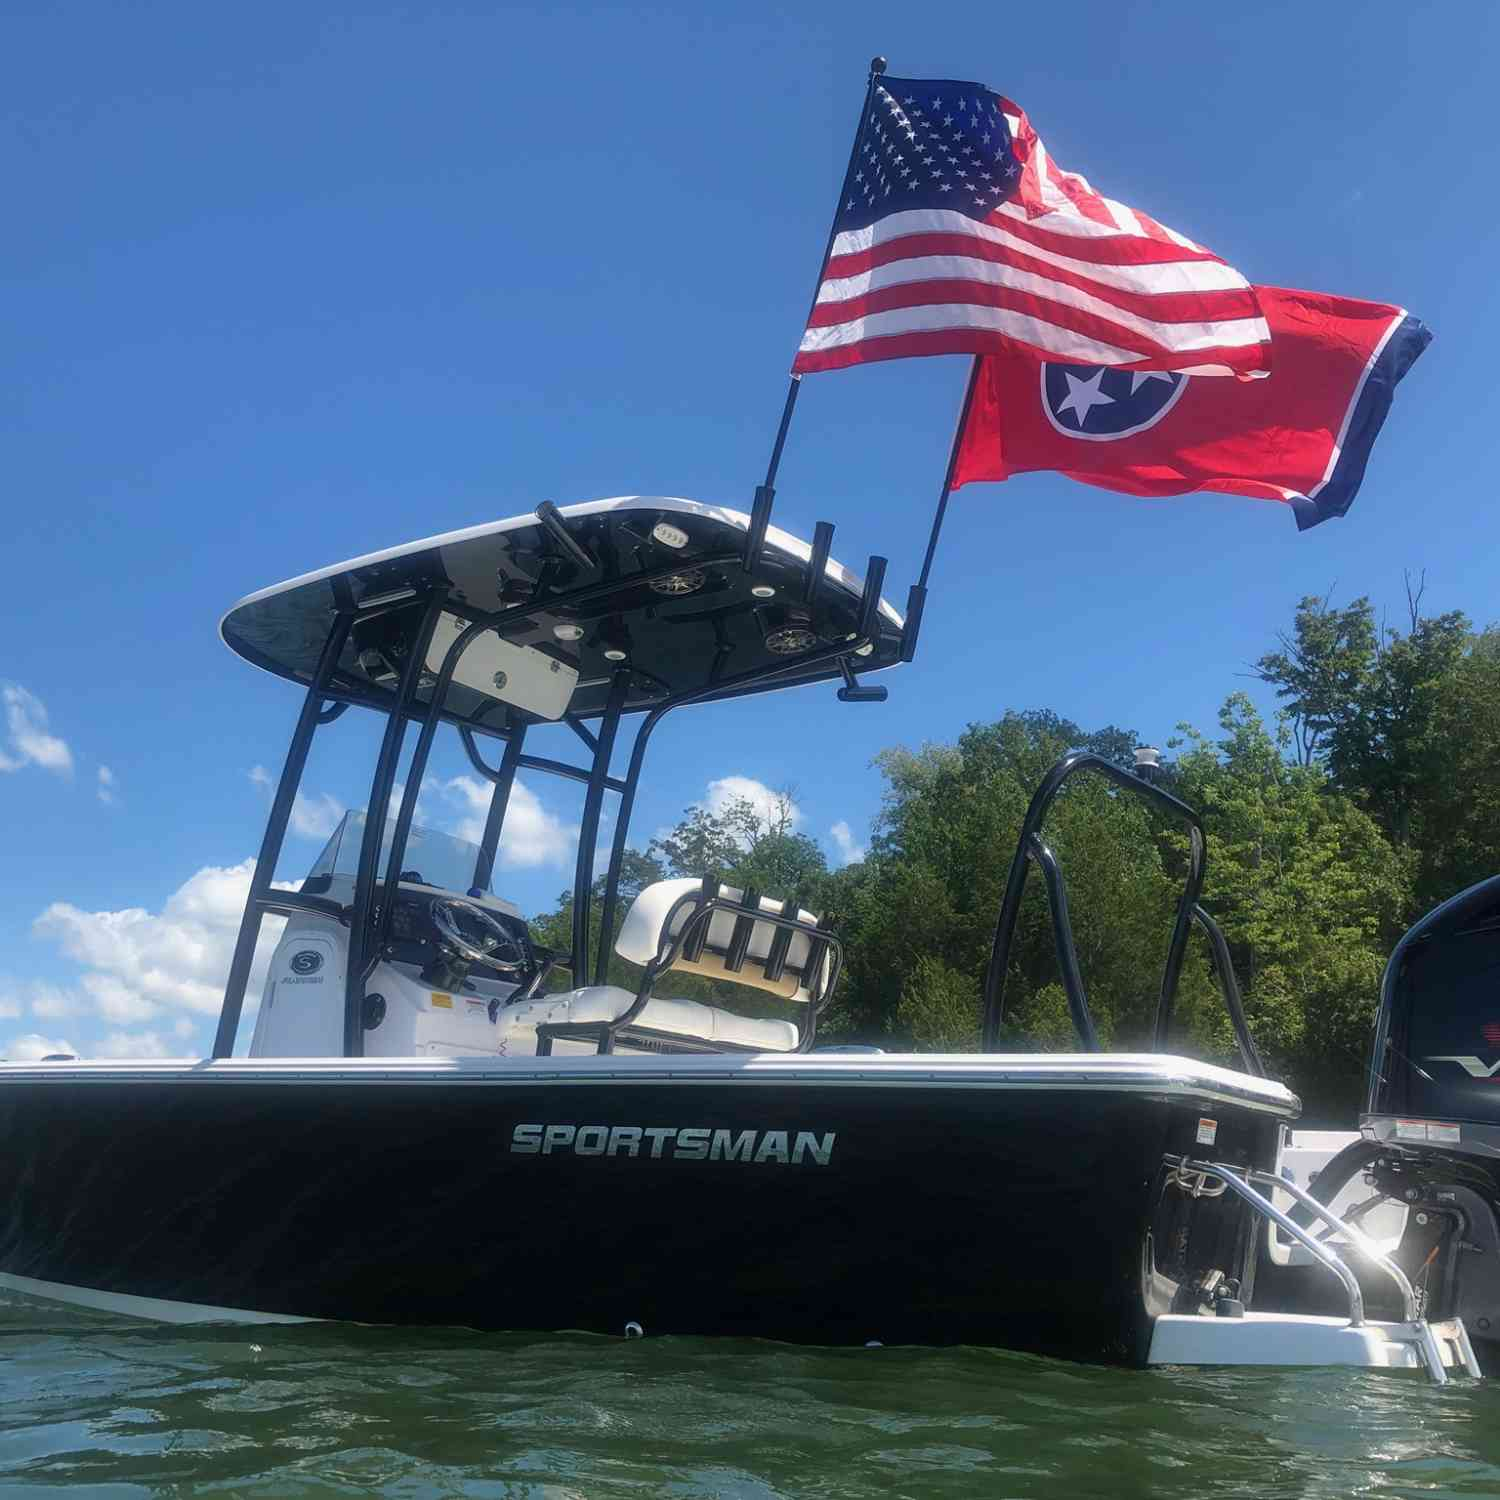 Title: No labor on Labor Day ... in Tennessee. - On board their Sportsman Masters 227 Bay Boat - Location: Nashville, TN. Participating in the Photo Contest #SportsmanSeptember2018